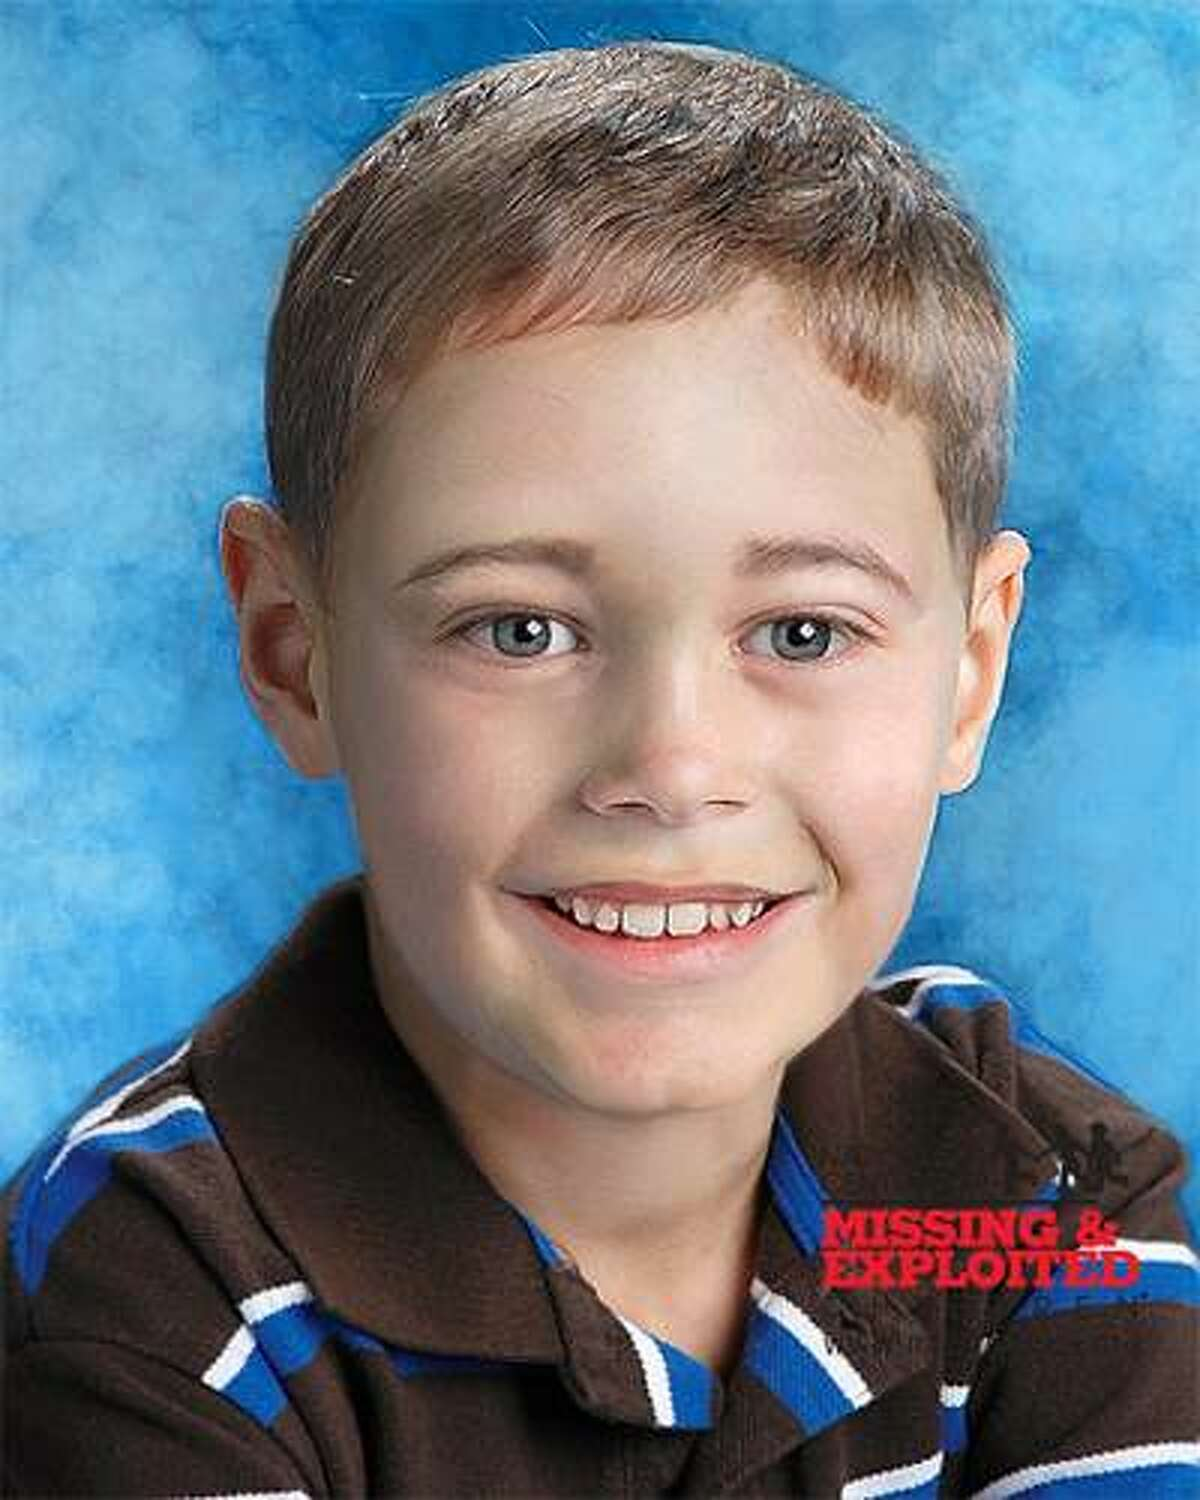 An age progressed photo of Gabriel Johnson, who would be 7 years old today.